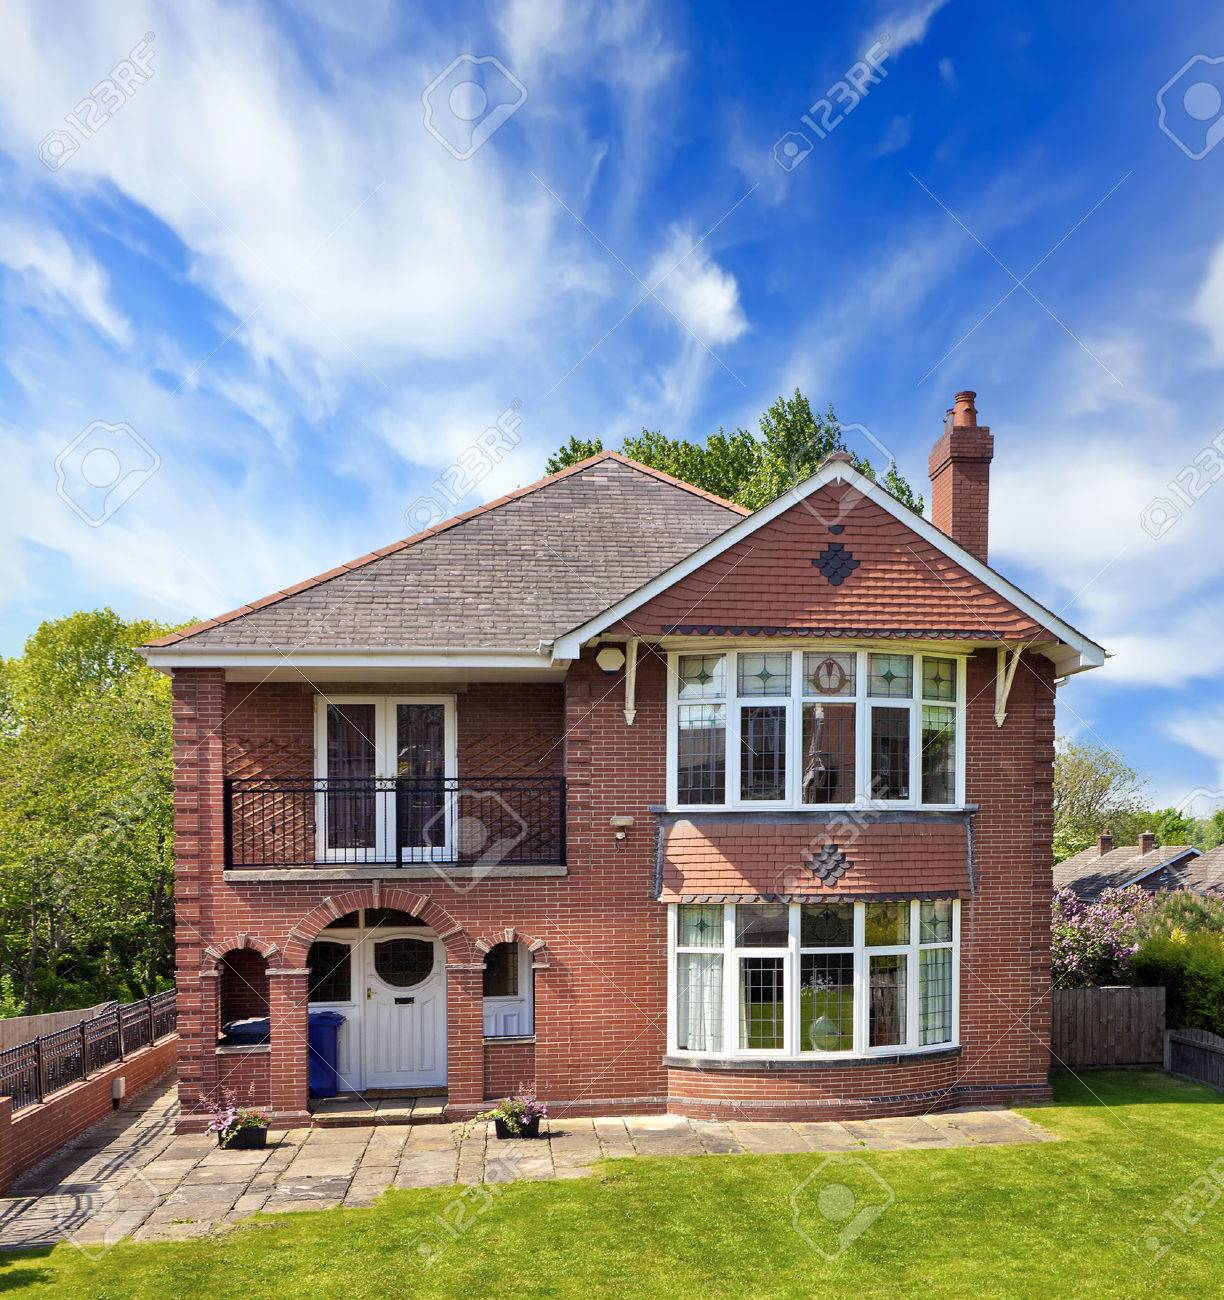 Typical Red Brick House Stock Photo, Picture And Royalty Free Image ...